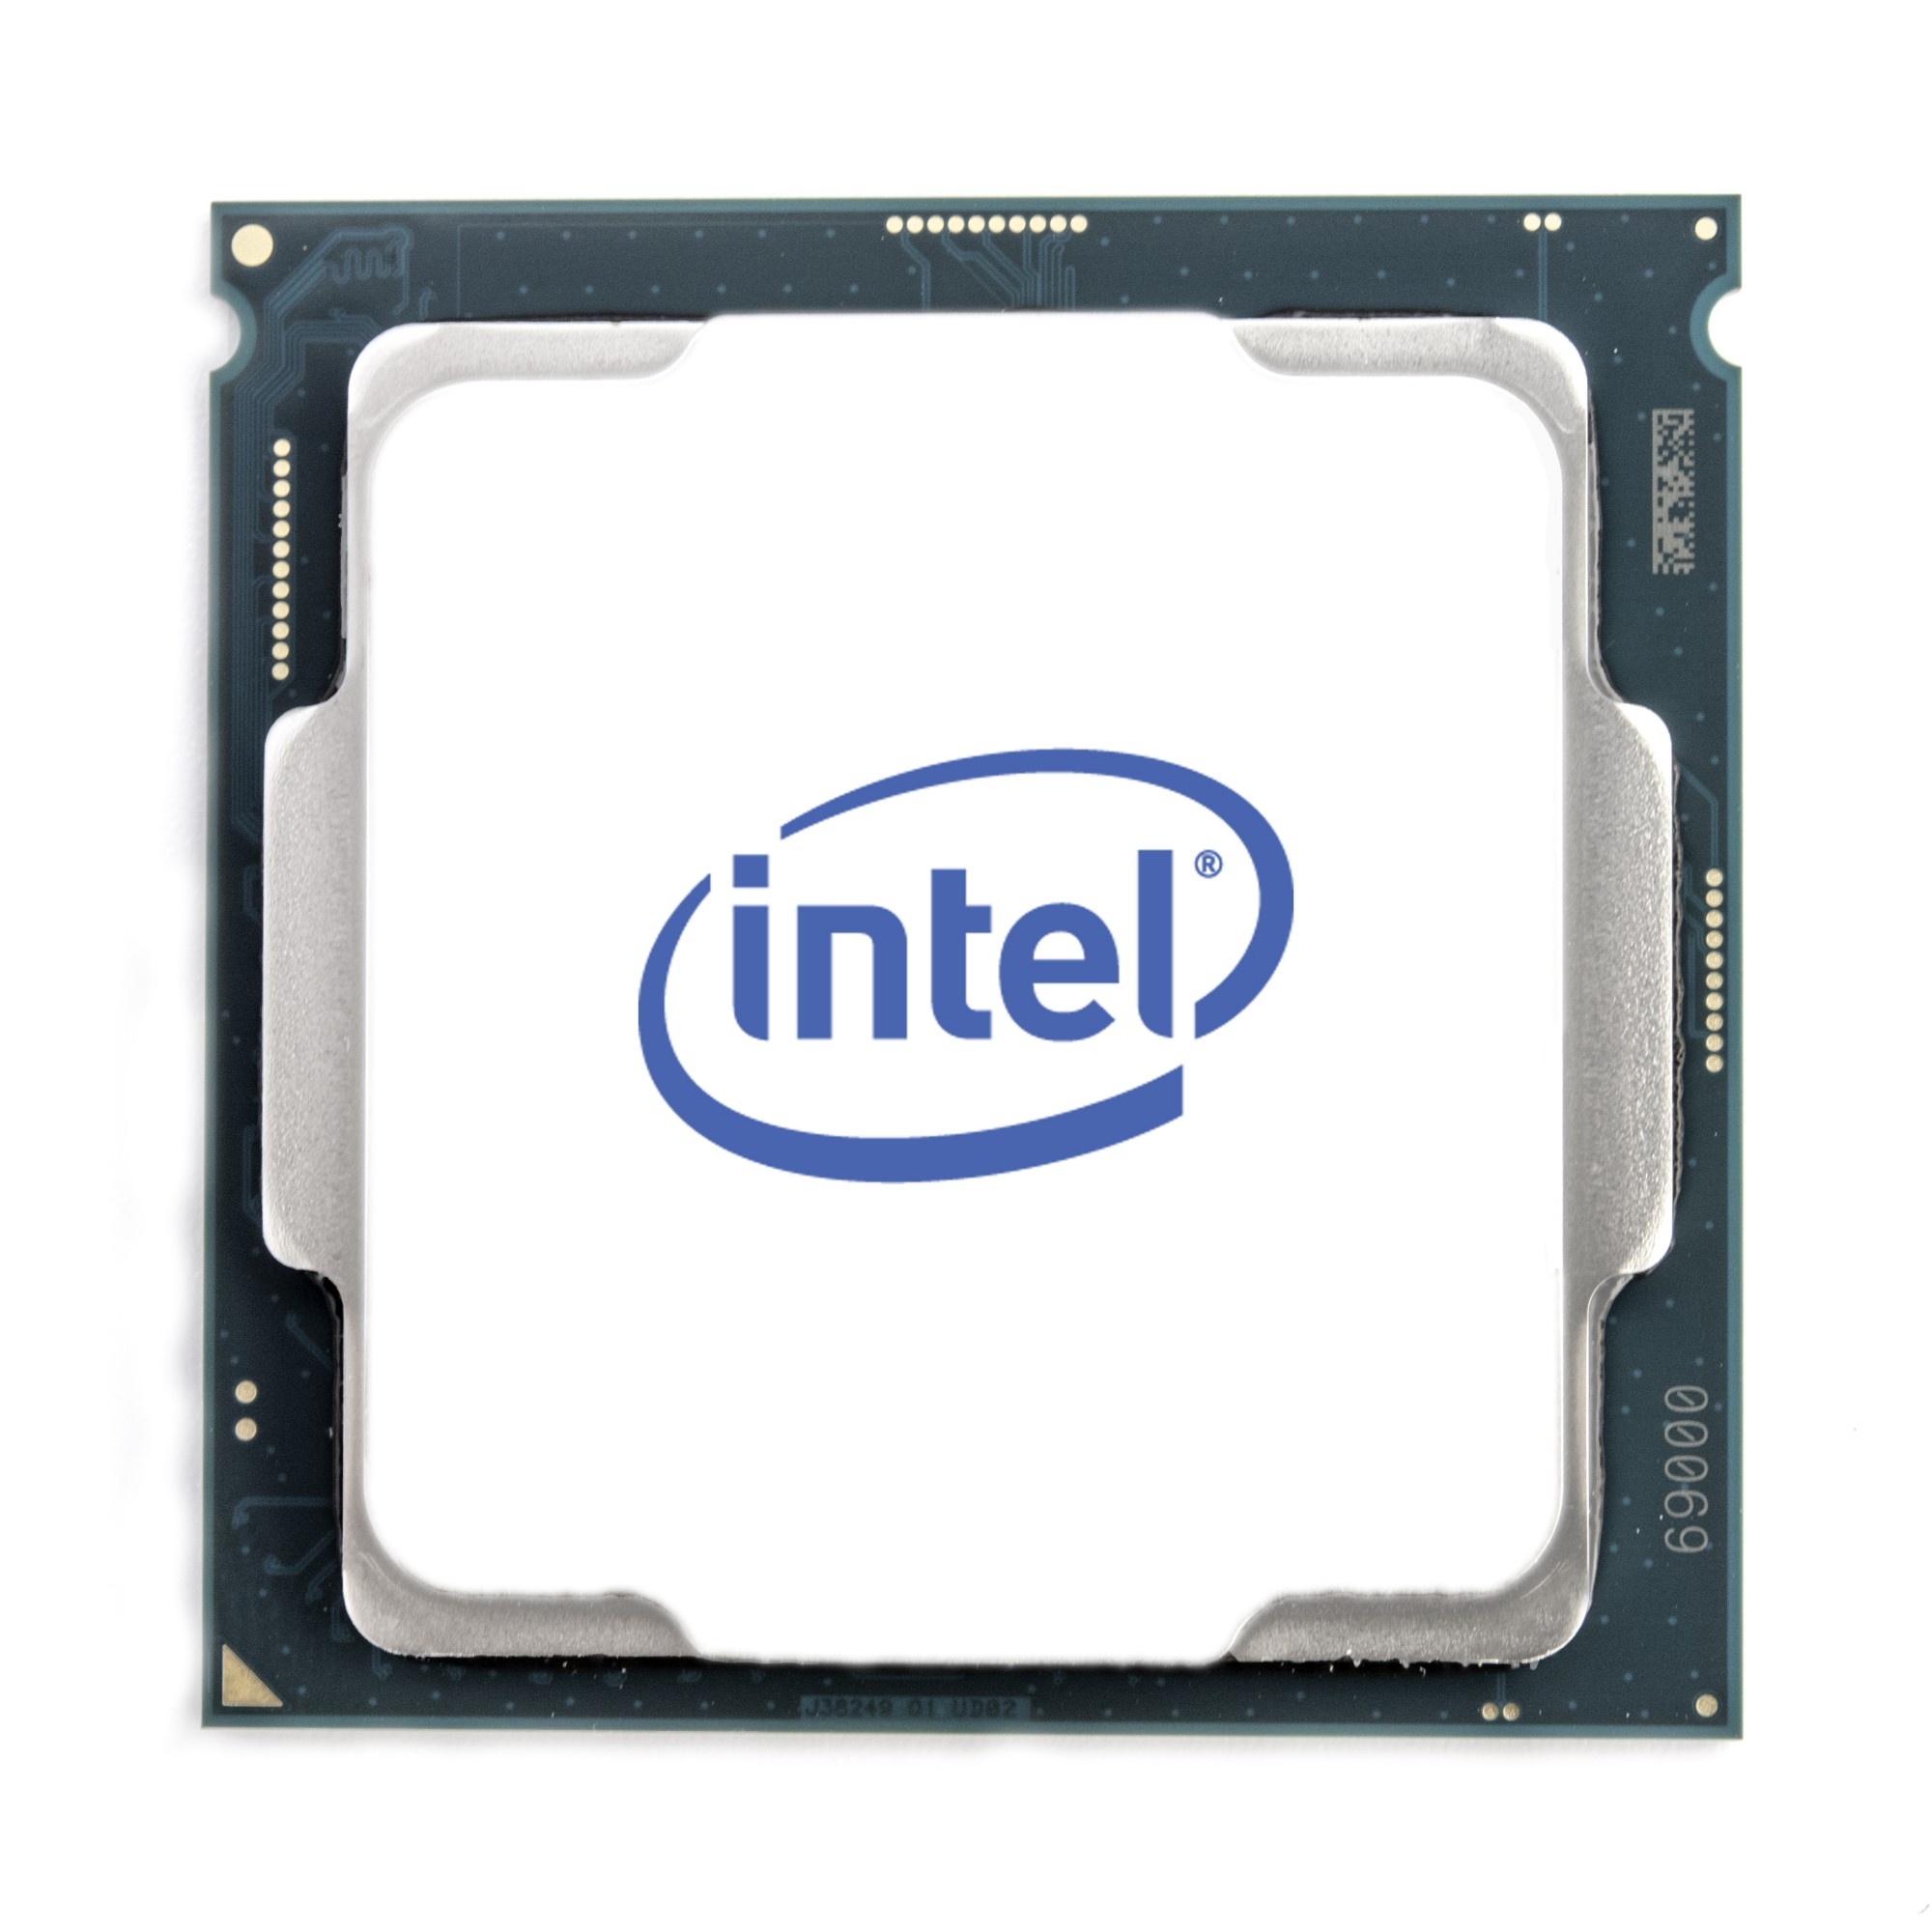 INTEL CM8068403377308 CORE I3-8100 PROCESSOR (6M CACHE, 3.60 GHZ) 3.60GHZ 6MB SMART CACHE (TRAY ONLY PROCESSOR)